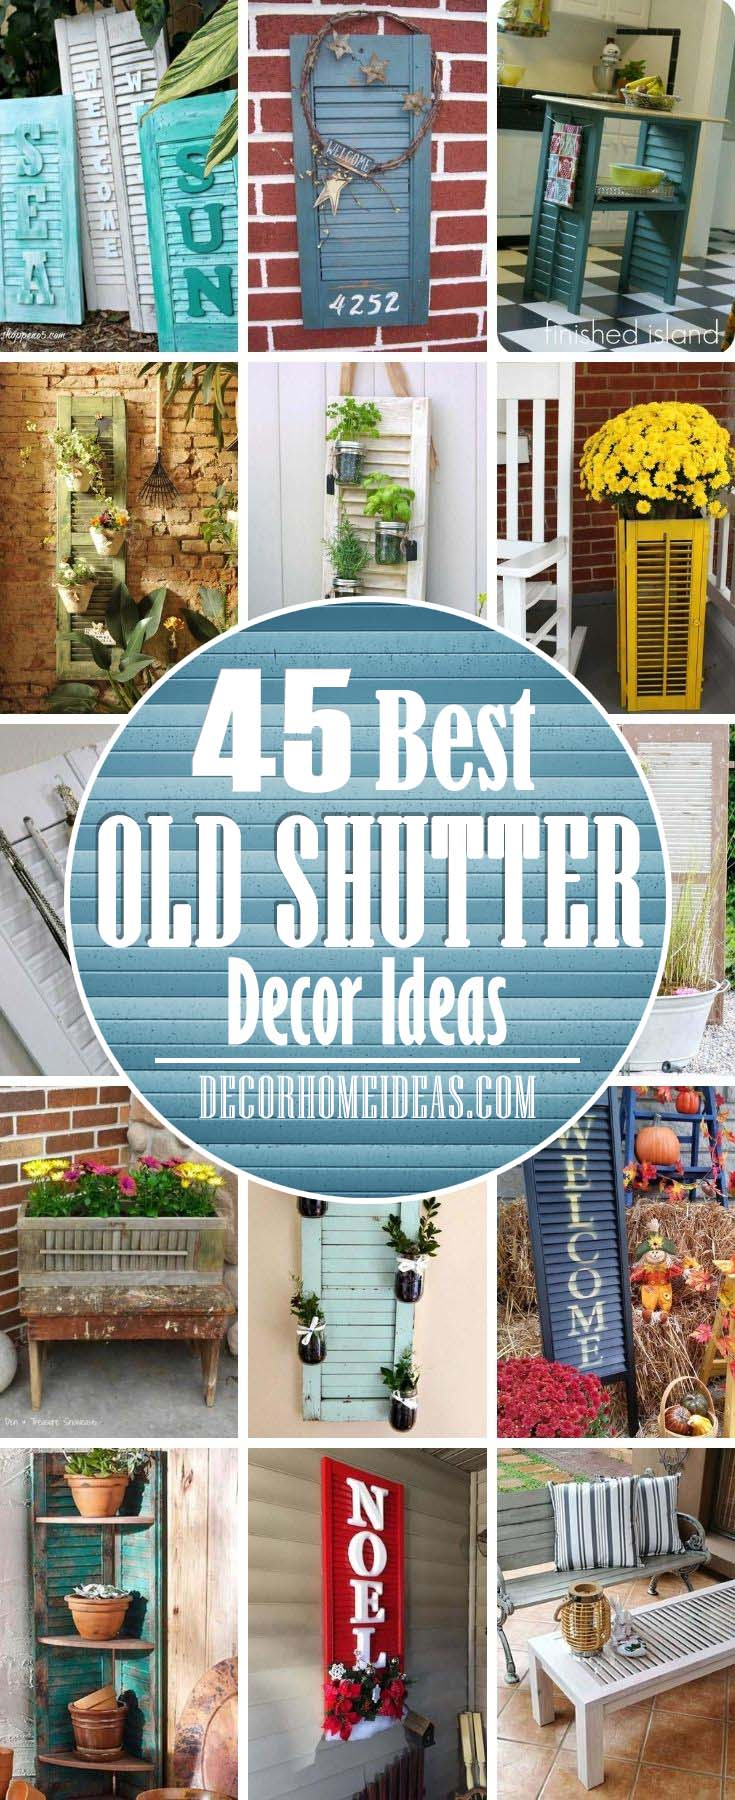 Best Old Shutters Decor Ideas. There are a lot of things that you can make from old shutters - flower pots, coffee table, bench, shelves, planter and even a kitchen island. #decorhomeideas